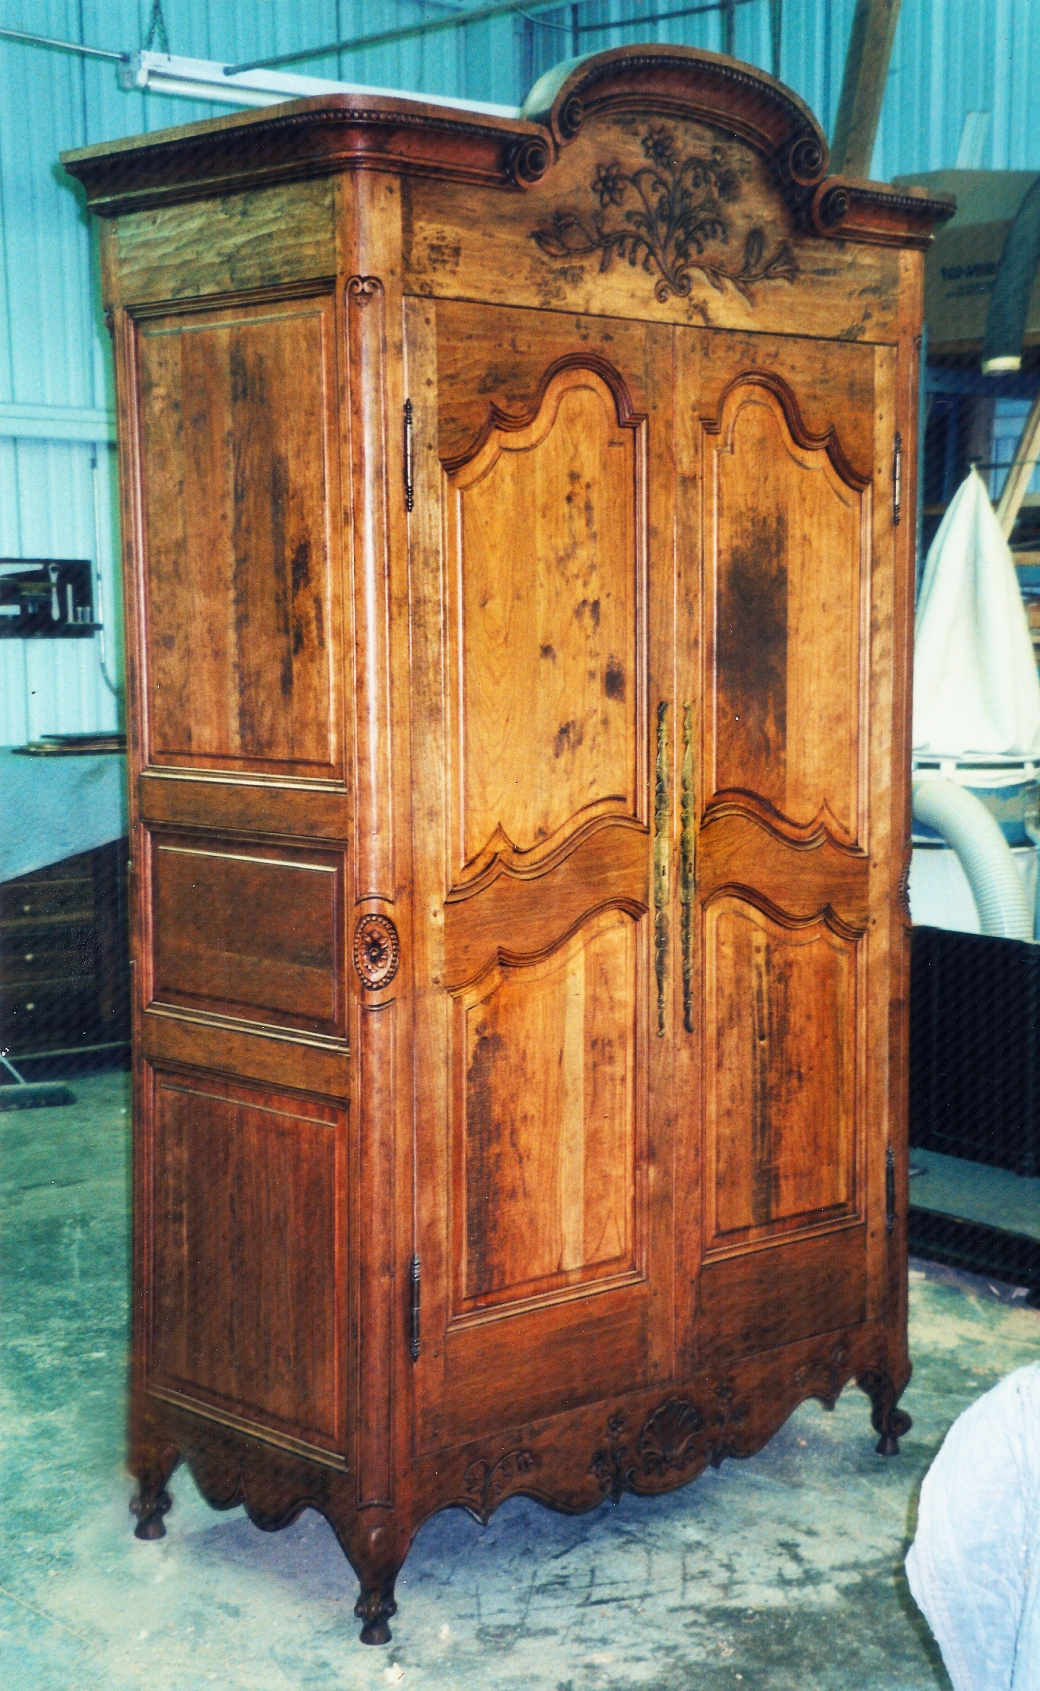 Rustic 18th Century Cherry Armoire (2)